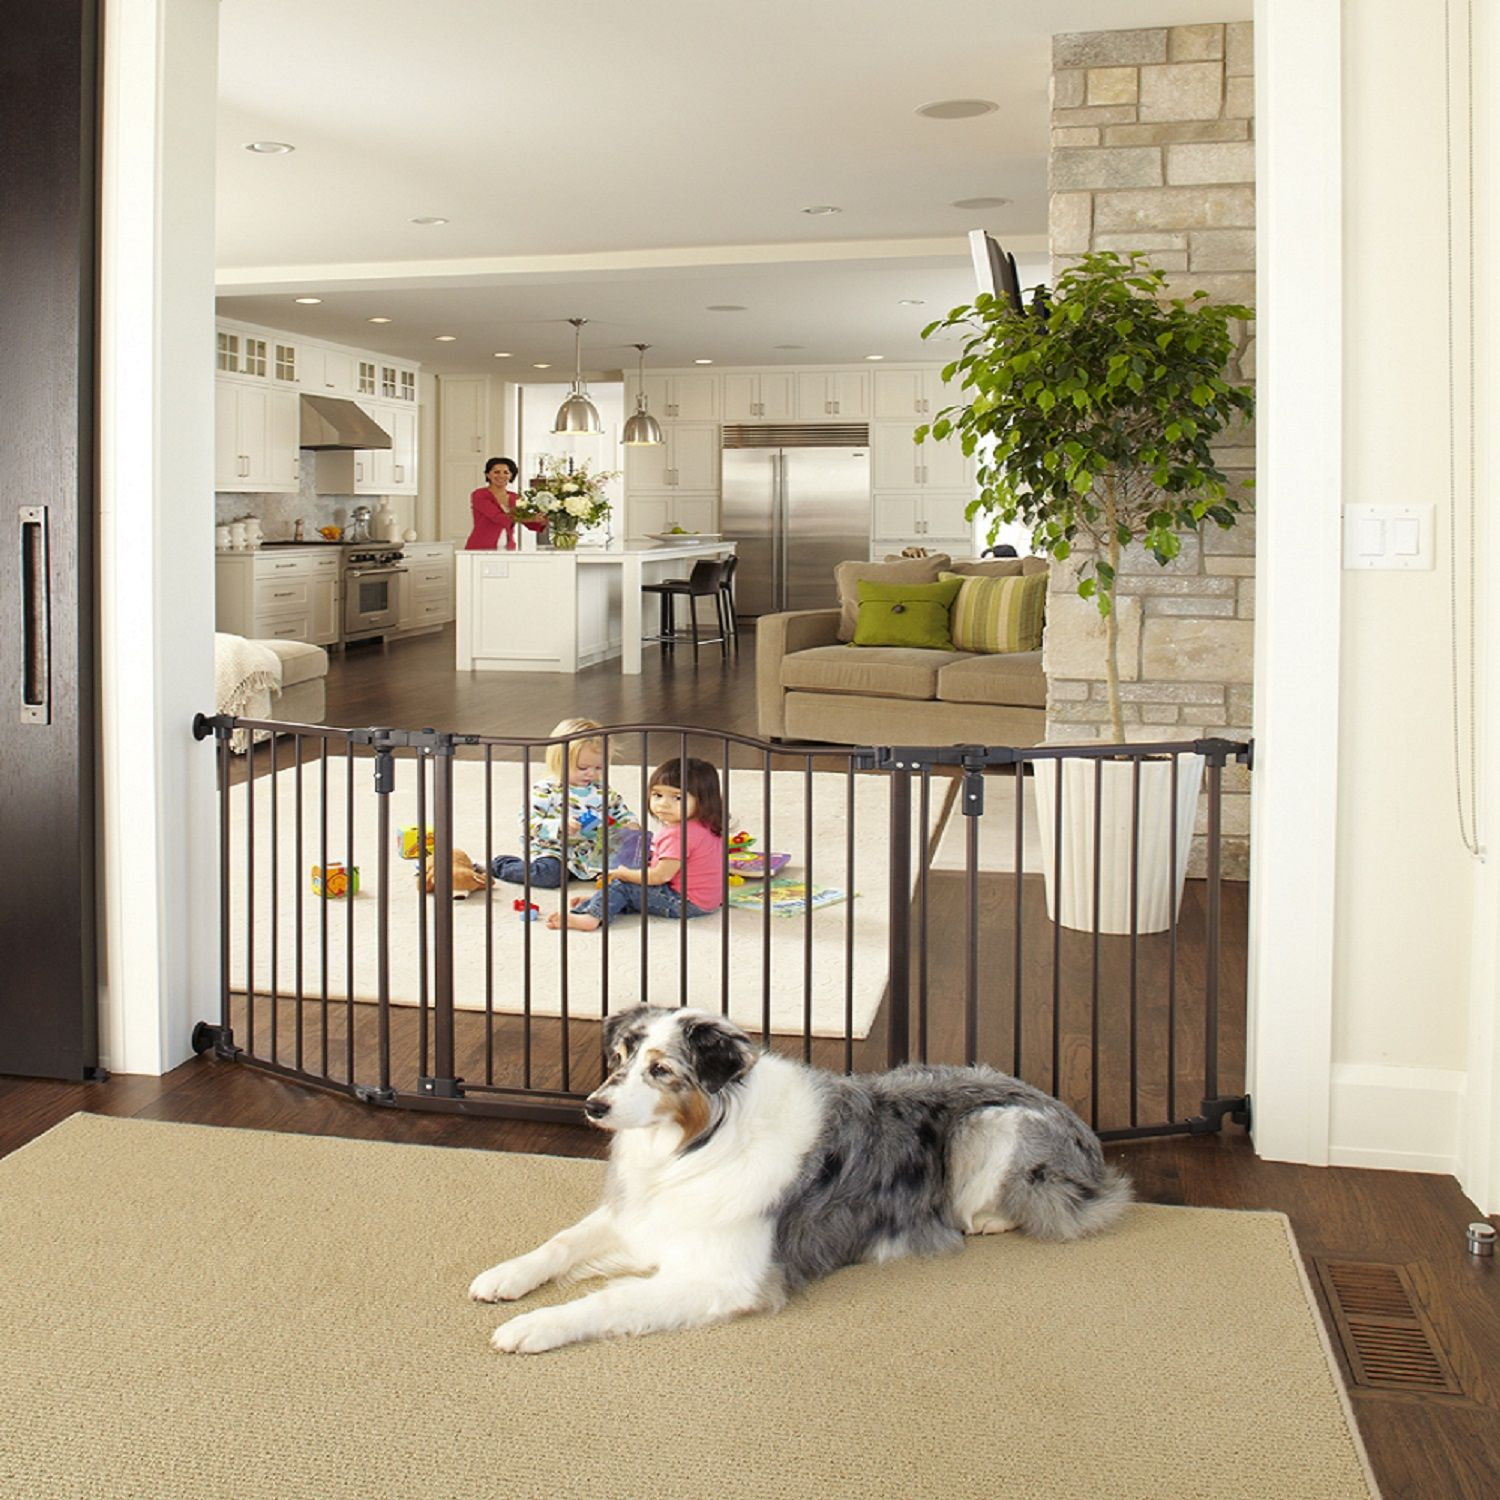 North states extrawide windsor arch pet gate wide baby gate